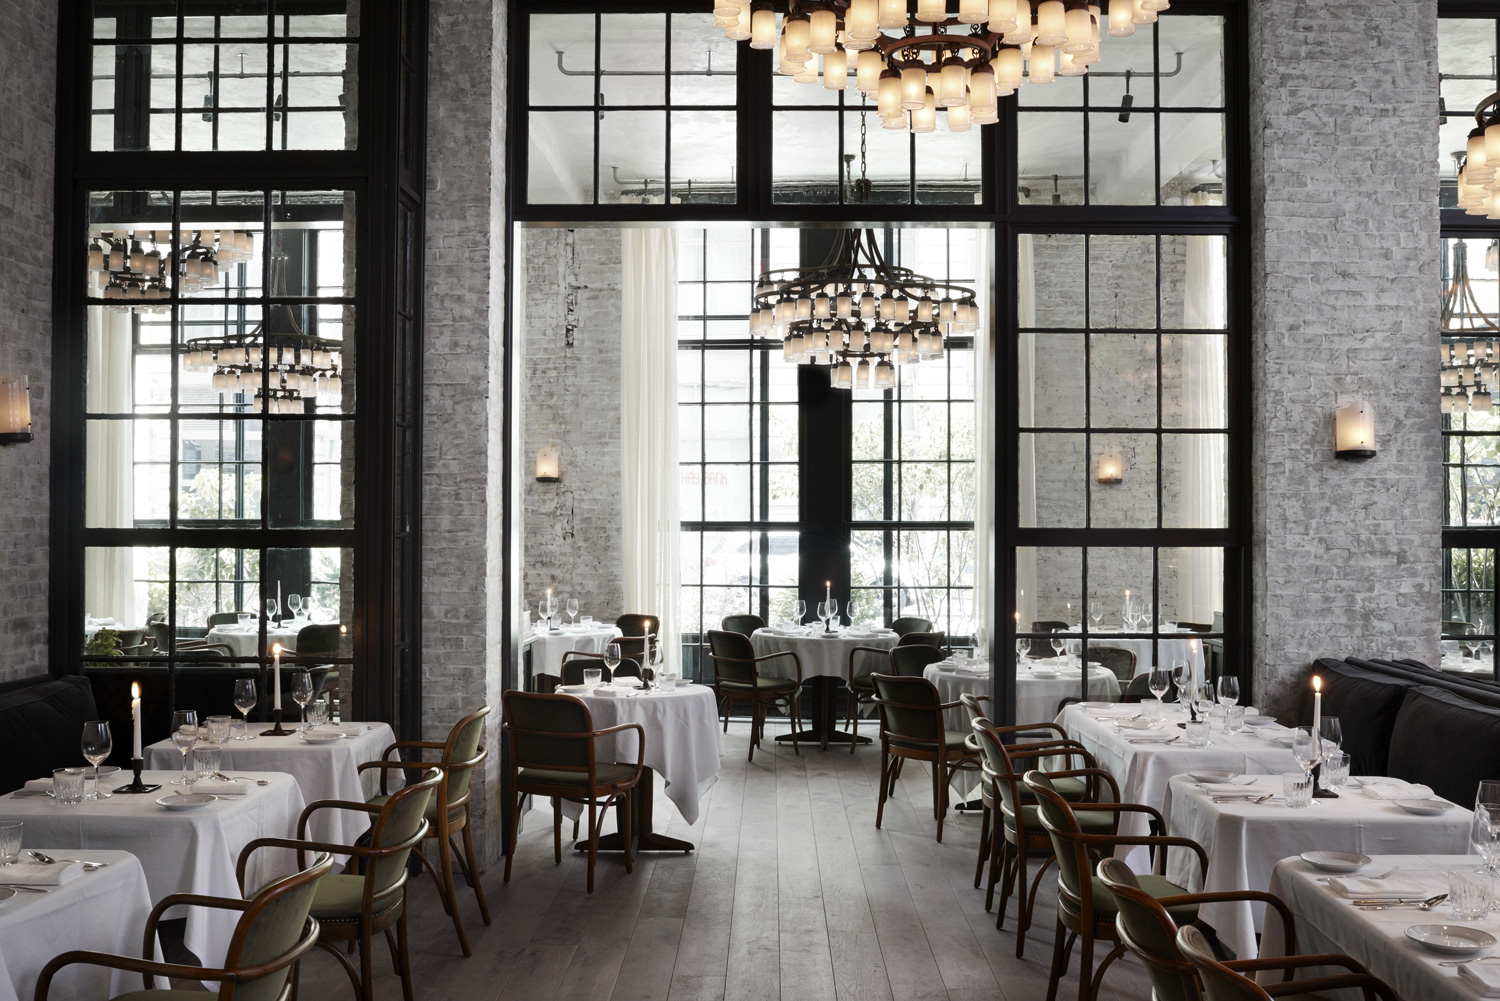 Le Coucou Restaurant in New York by Roman and Williams | Yellowtrace